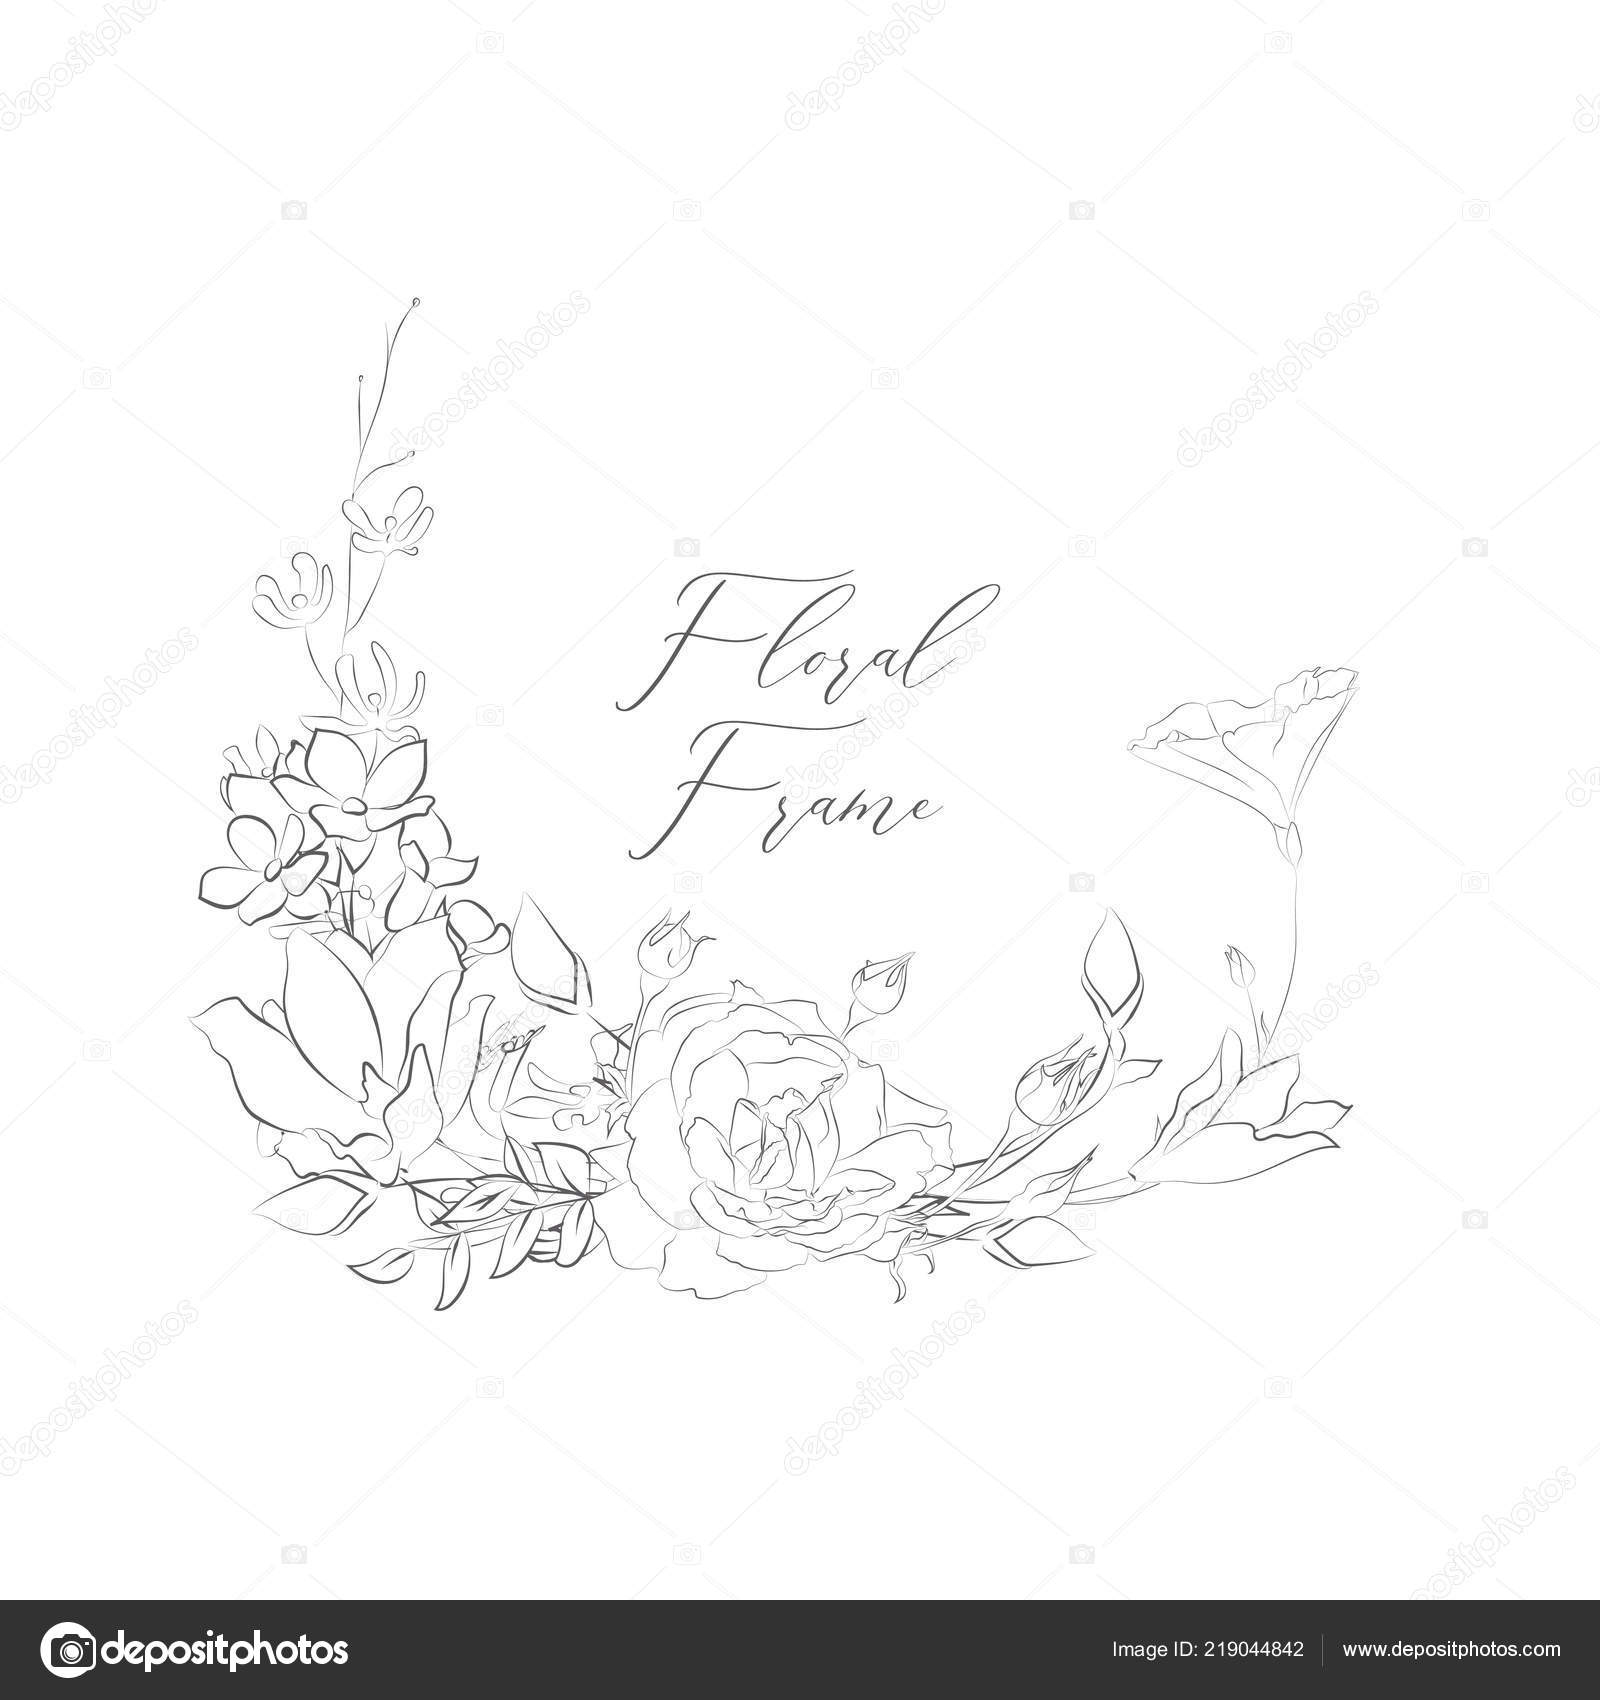 Flower Border Drawing Simple Simple Line Drawing Floristic Frame Border Delicate Drawn Flowers Rose Stock Vector C Oliafedorovsky 219044842